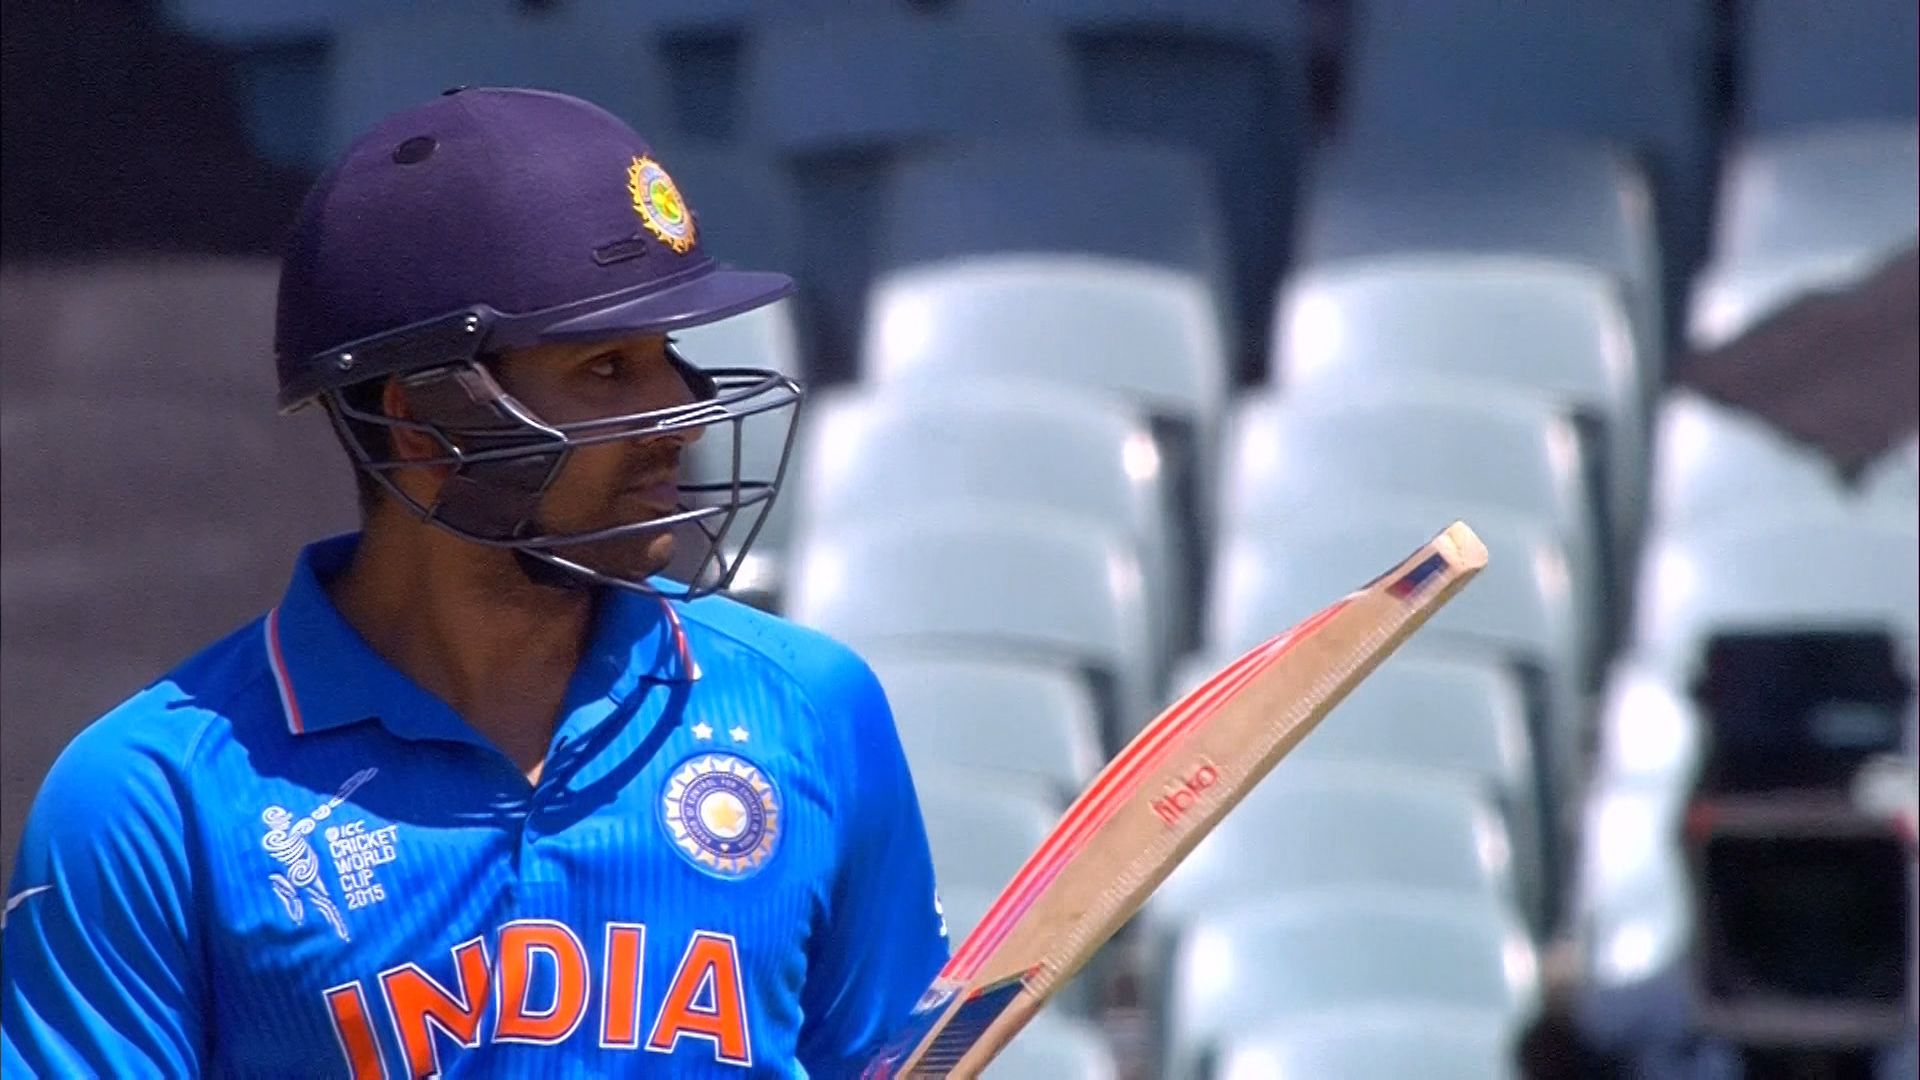 IND vs AFG – Destructive innings by Rohit Sharma!